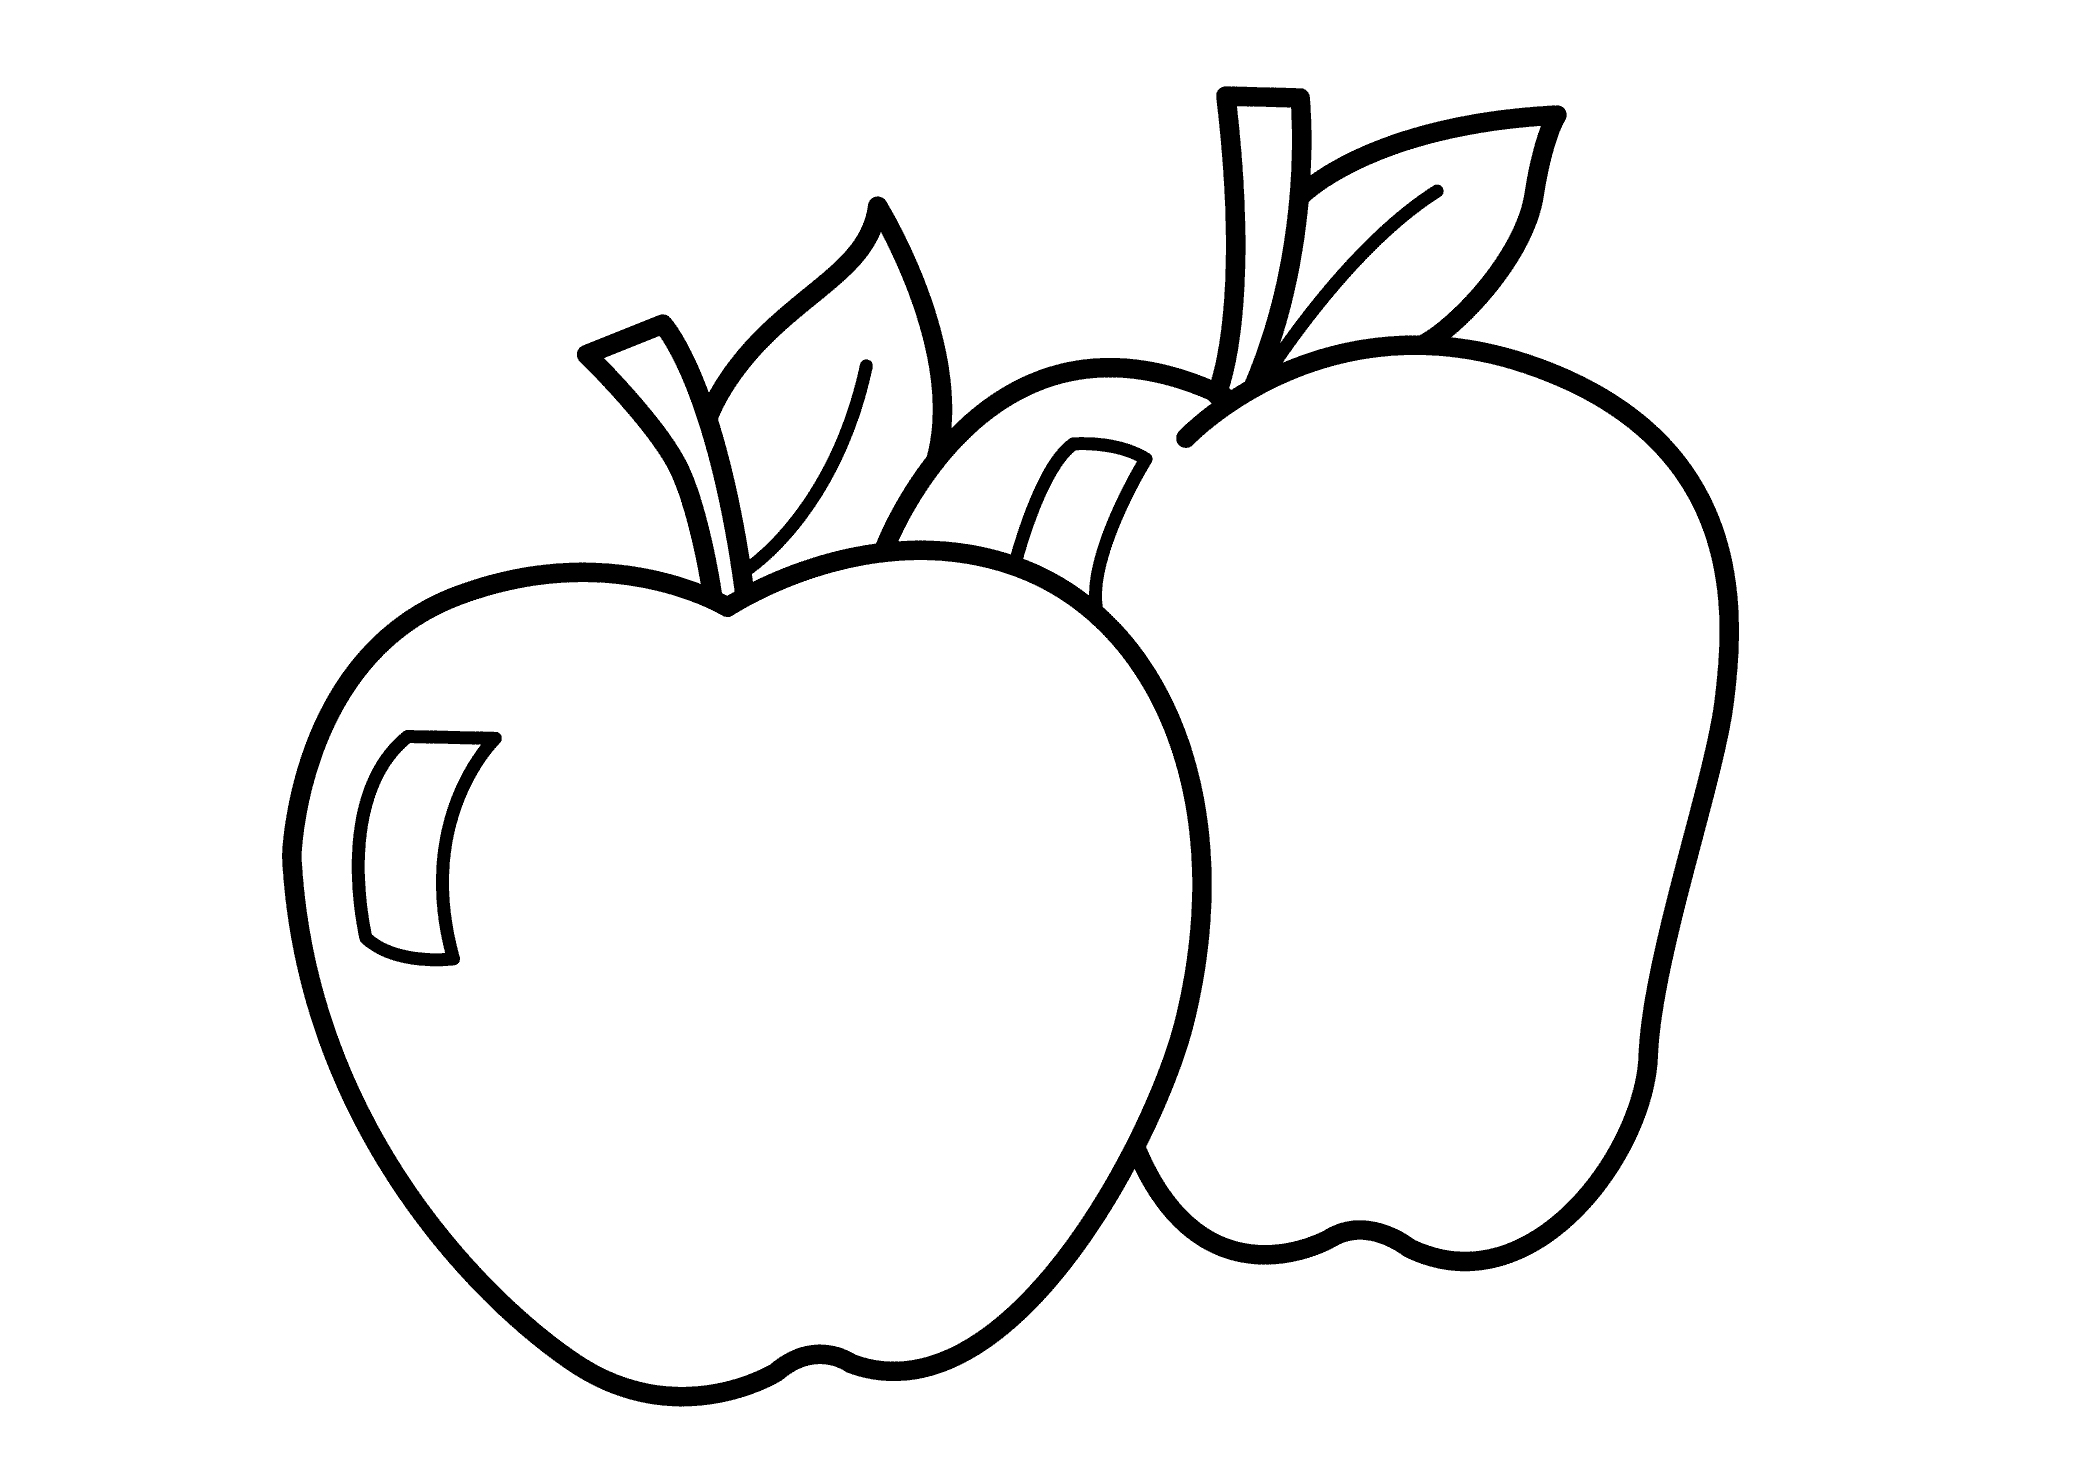 a for apple coloring page get this free apple coloring pages to print 6pyax apple a page coloring for